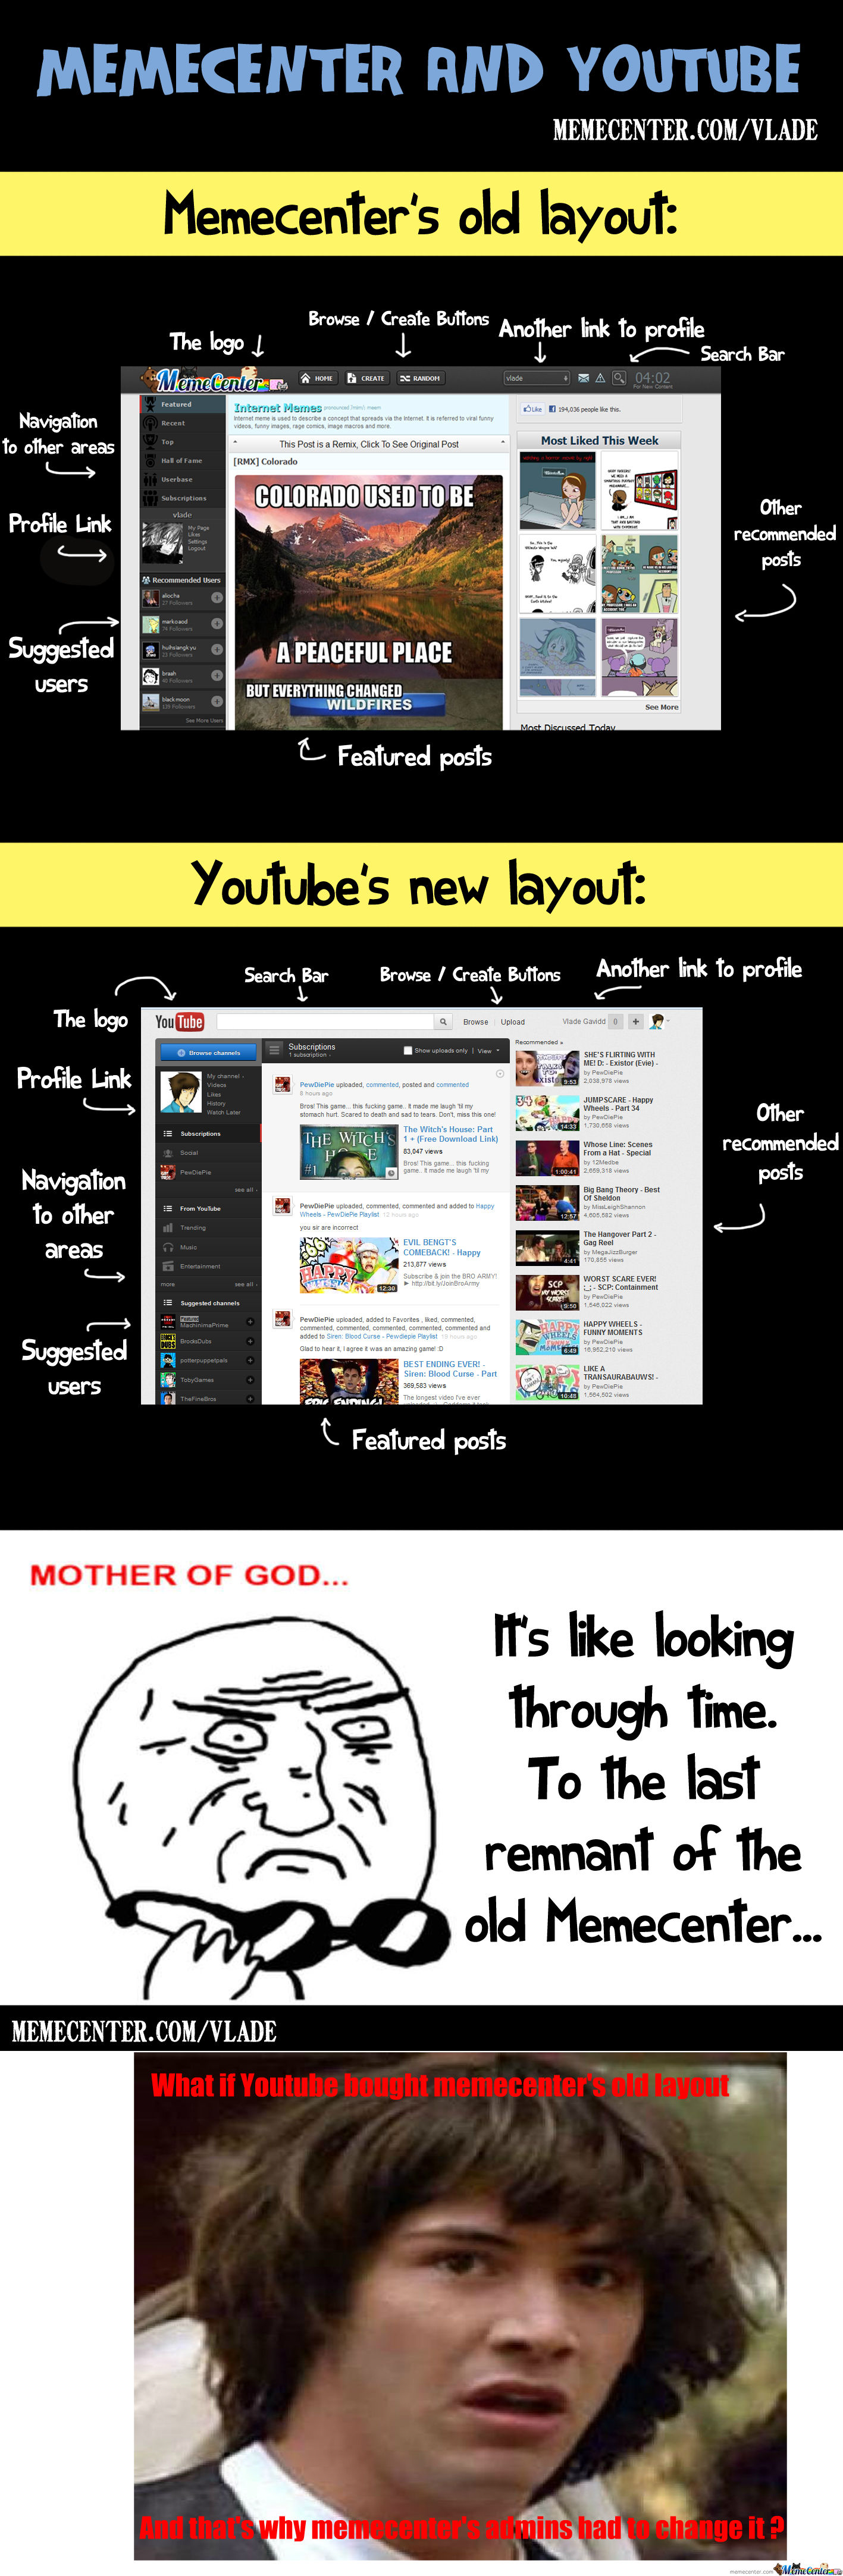 [RMX] Memecenter And Youtube